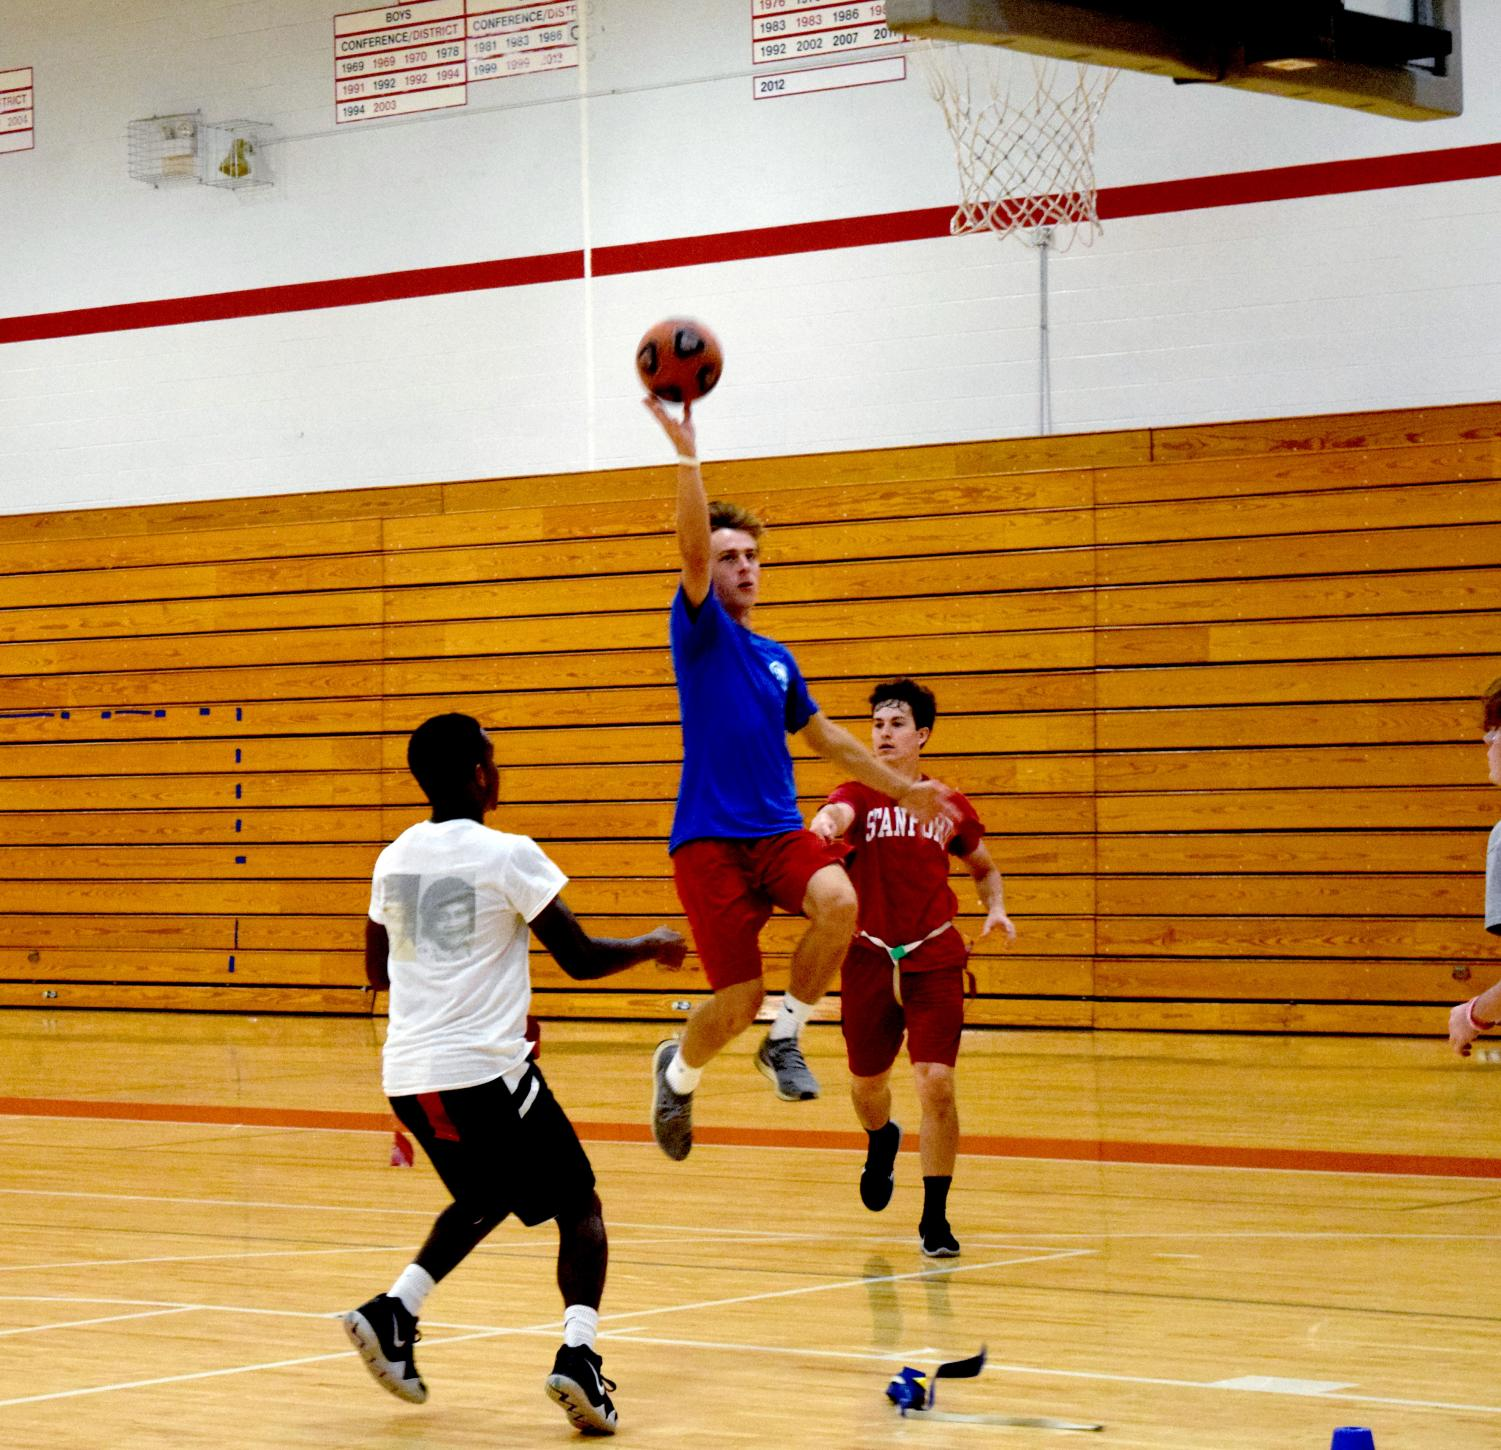 Junior Luke Schaefer jumps for a dunk while senior Jake Moritz pulls his flag during game of Gatorball, a combination of touch football, soccer, and football in competitive sports PE class.